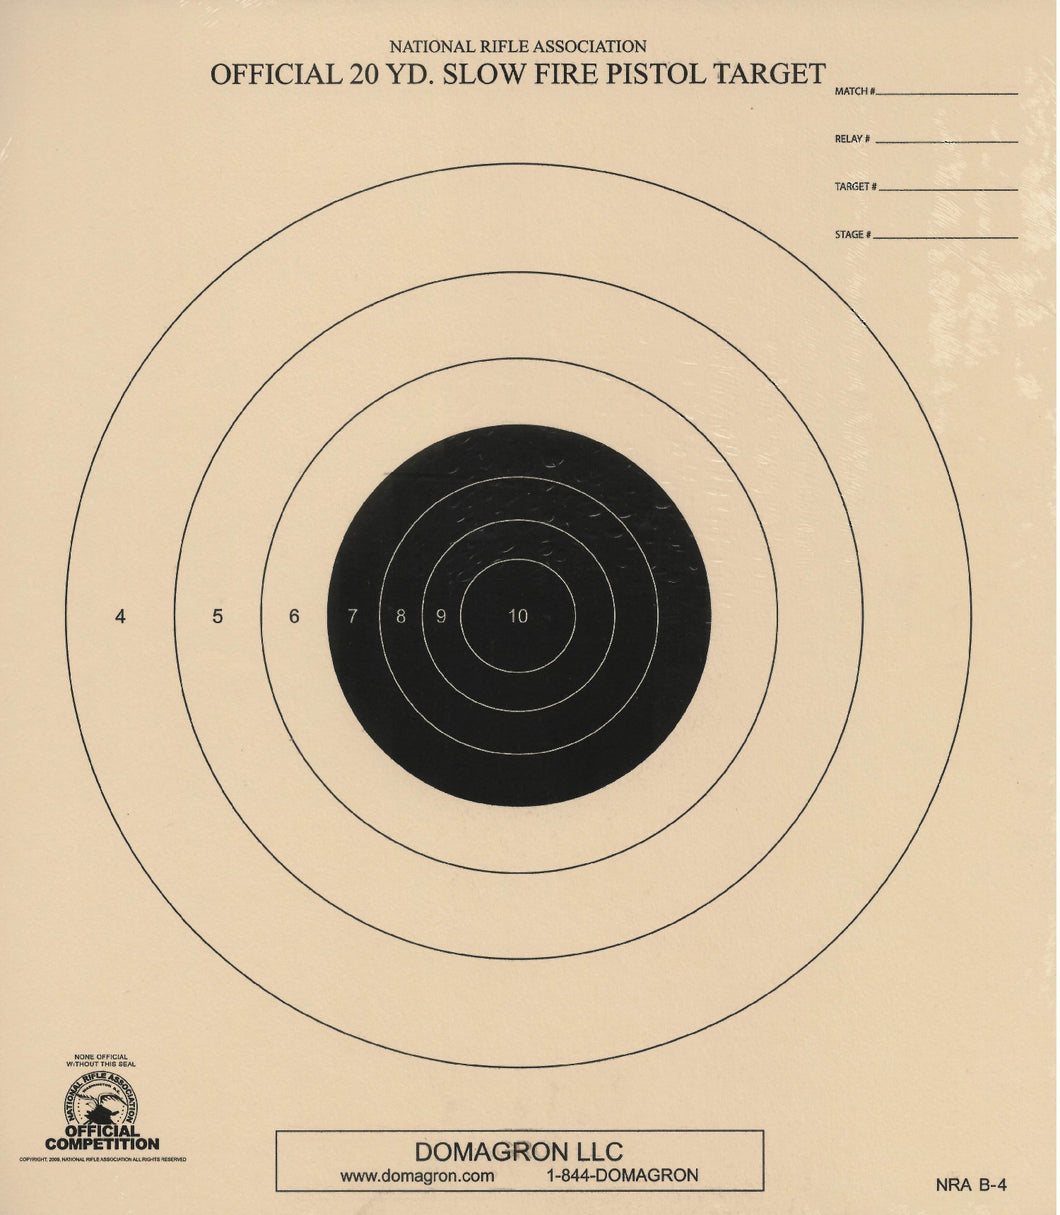 B-4 - 20 Yard Slow Fire Target Official NRA Target - DOMAGRON